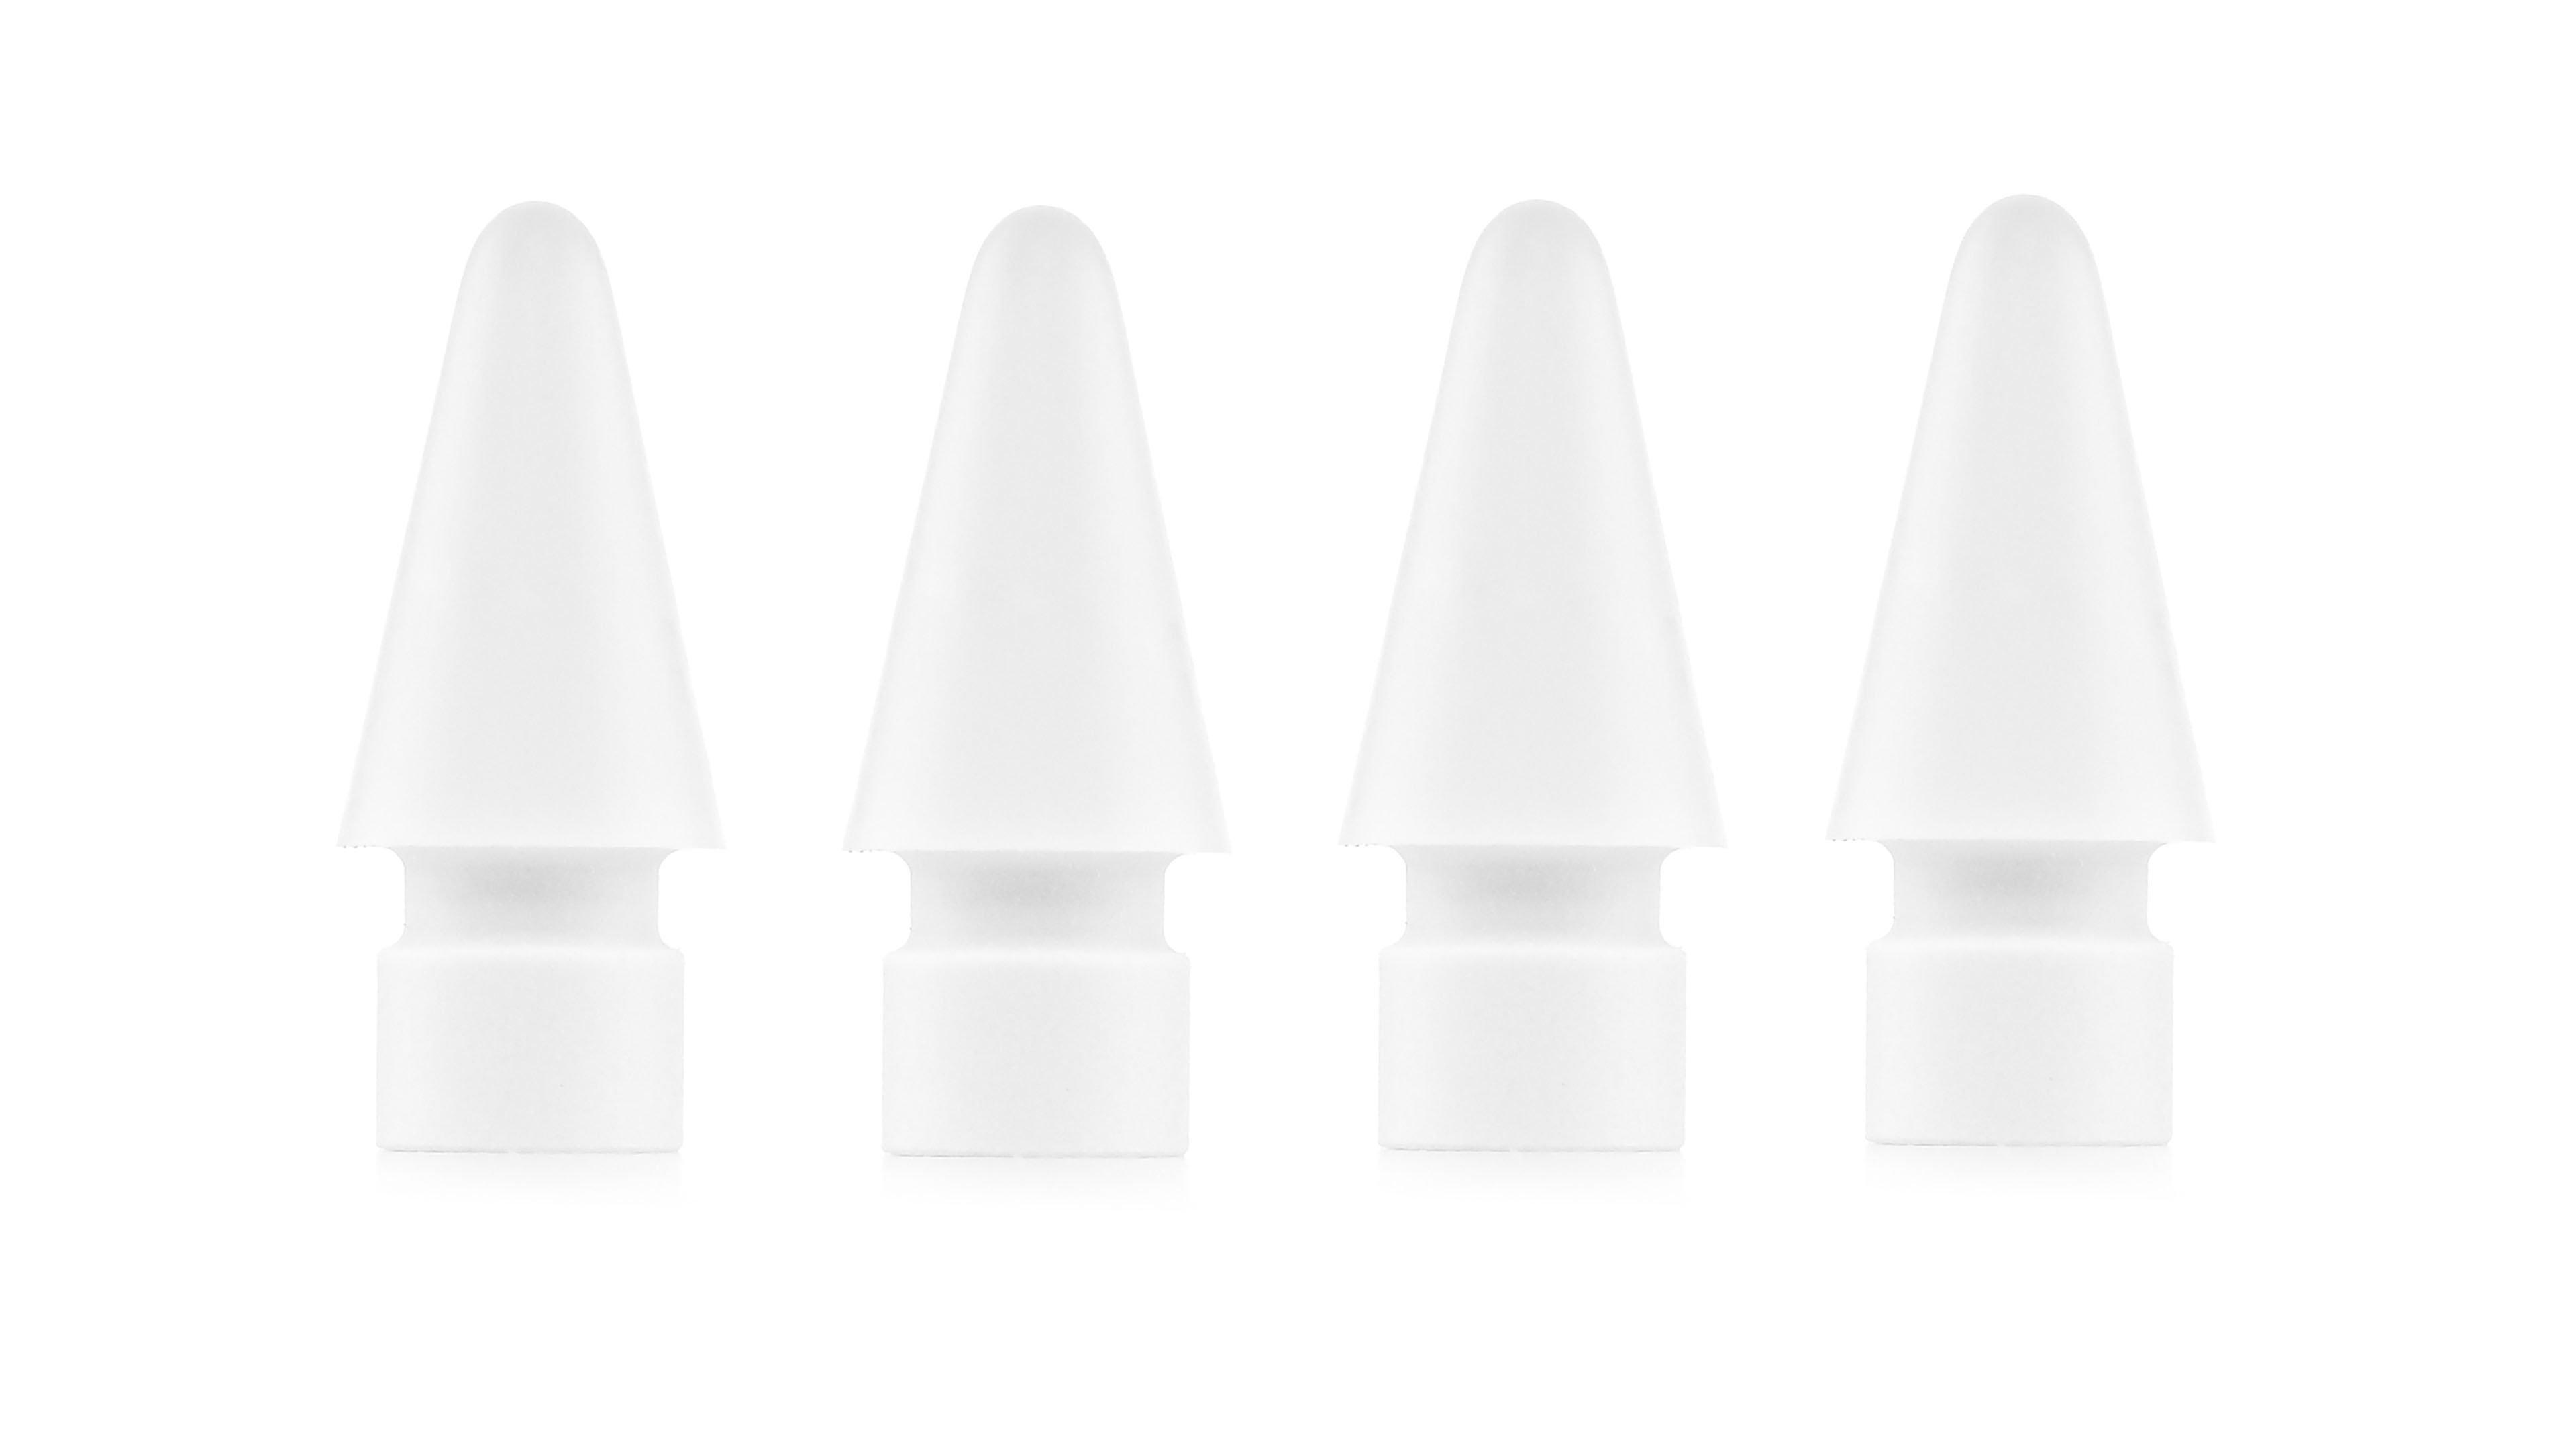 Apple Pencil Tips - 4 pack, White